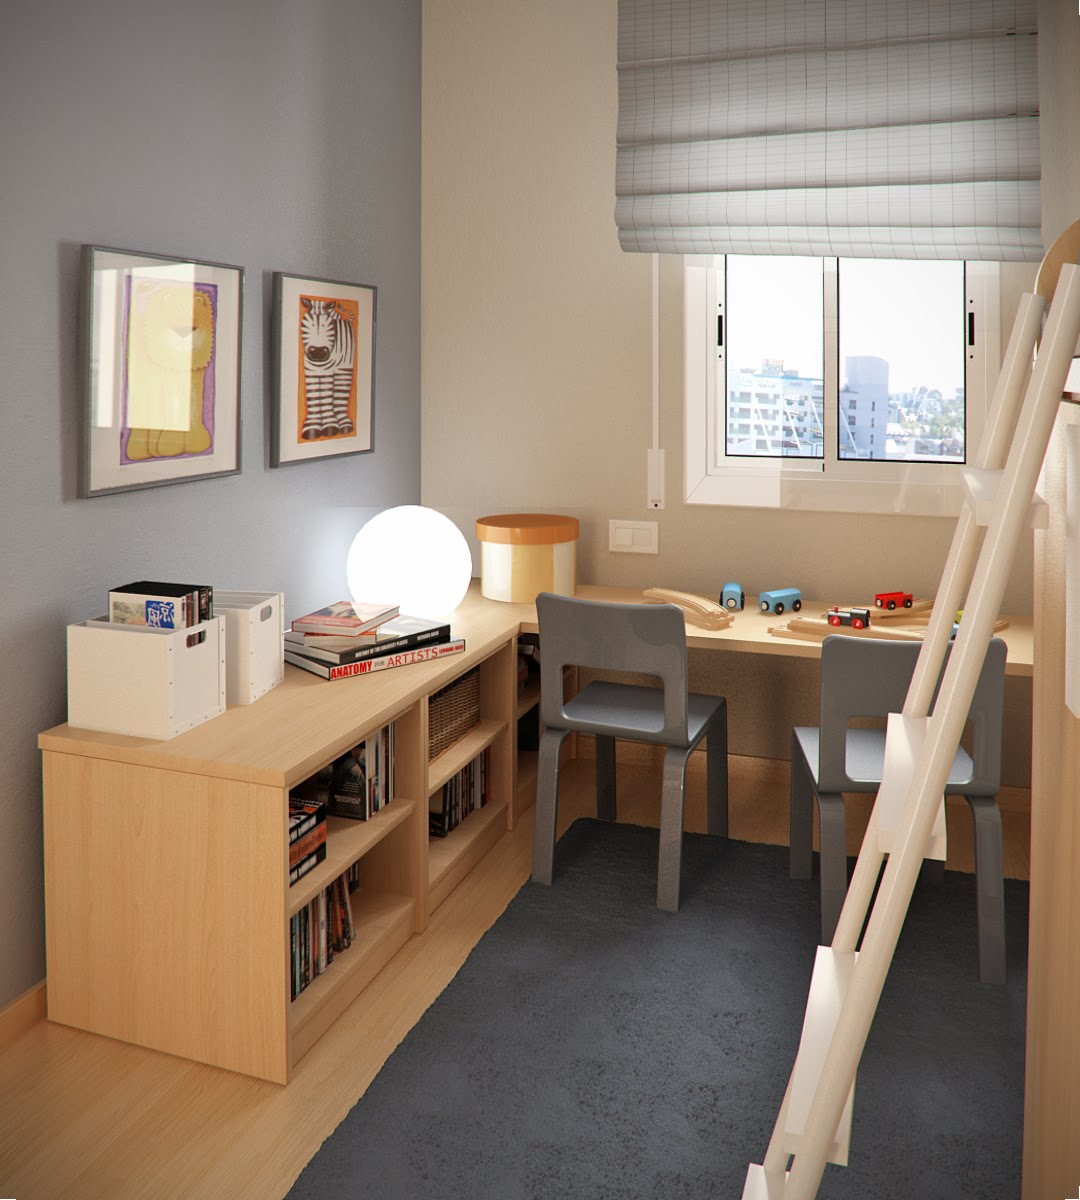 Design ideas small floorspace kids rooms grey brown - Small space playroom ideas ...